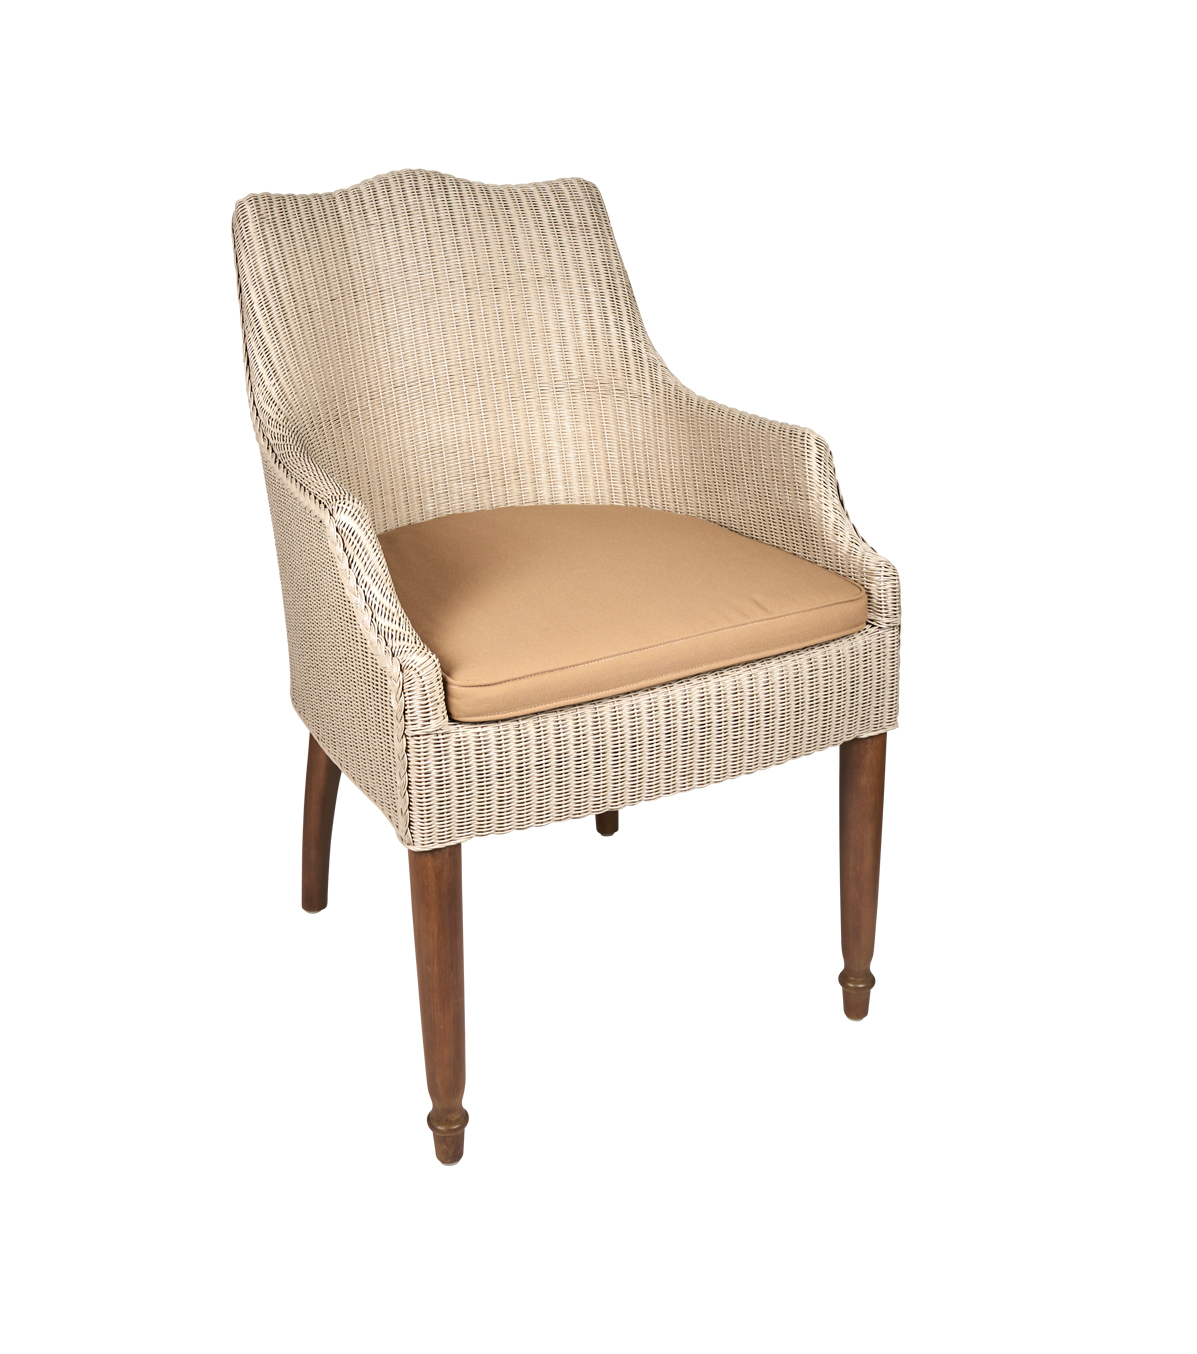 Lloyd loom Sessel Brighton MA Perl